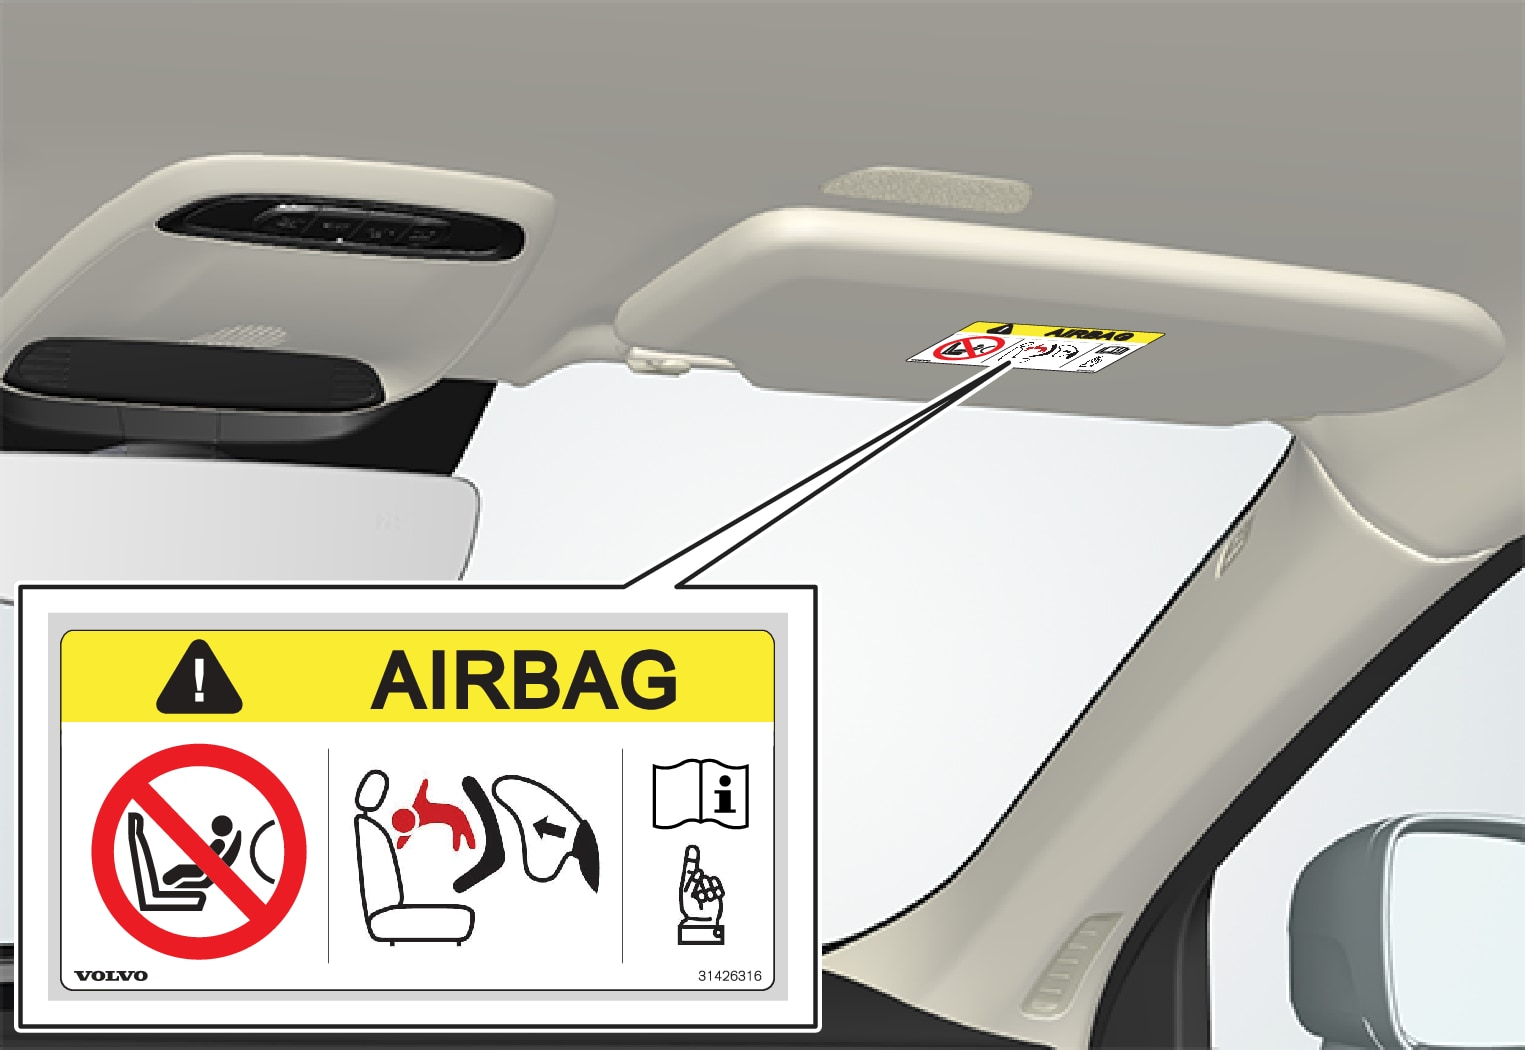 P5-1546–Safety–Airbag decal placement EU 1